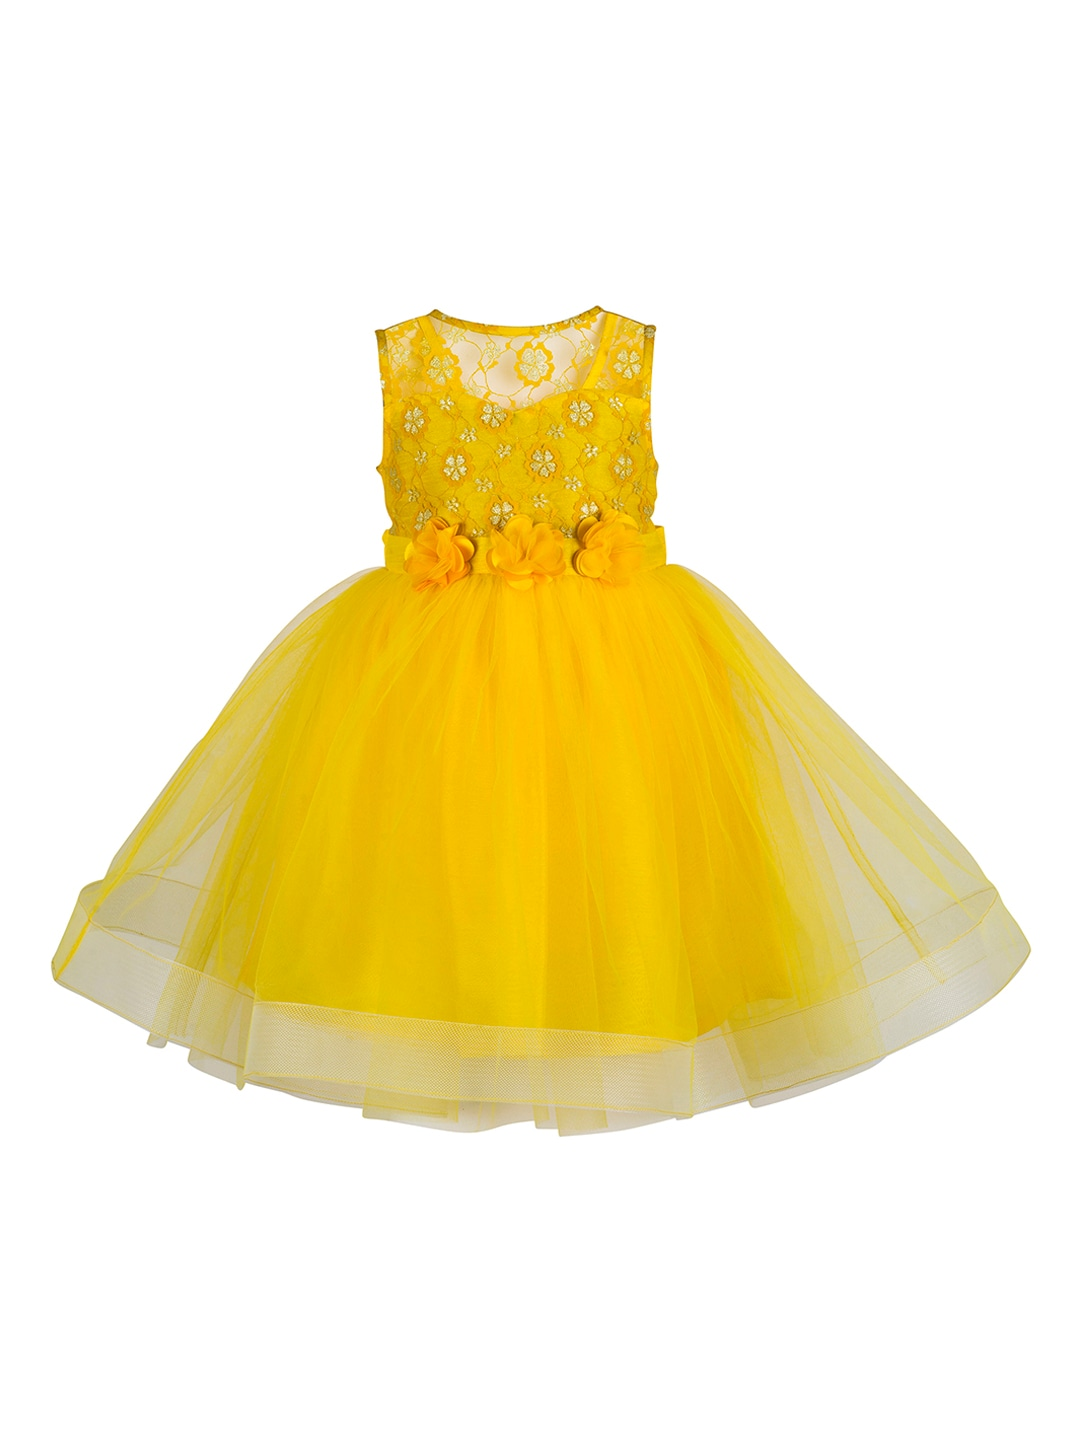 Toy Balloon Kids Dresses Buy Toy Balloon Kids Dresses Online In India